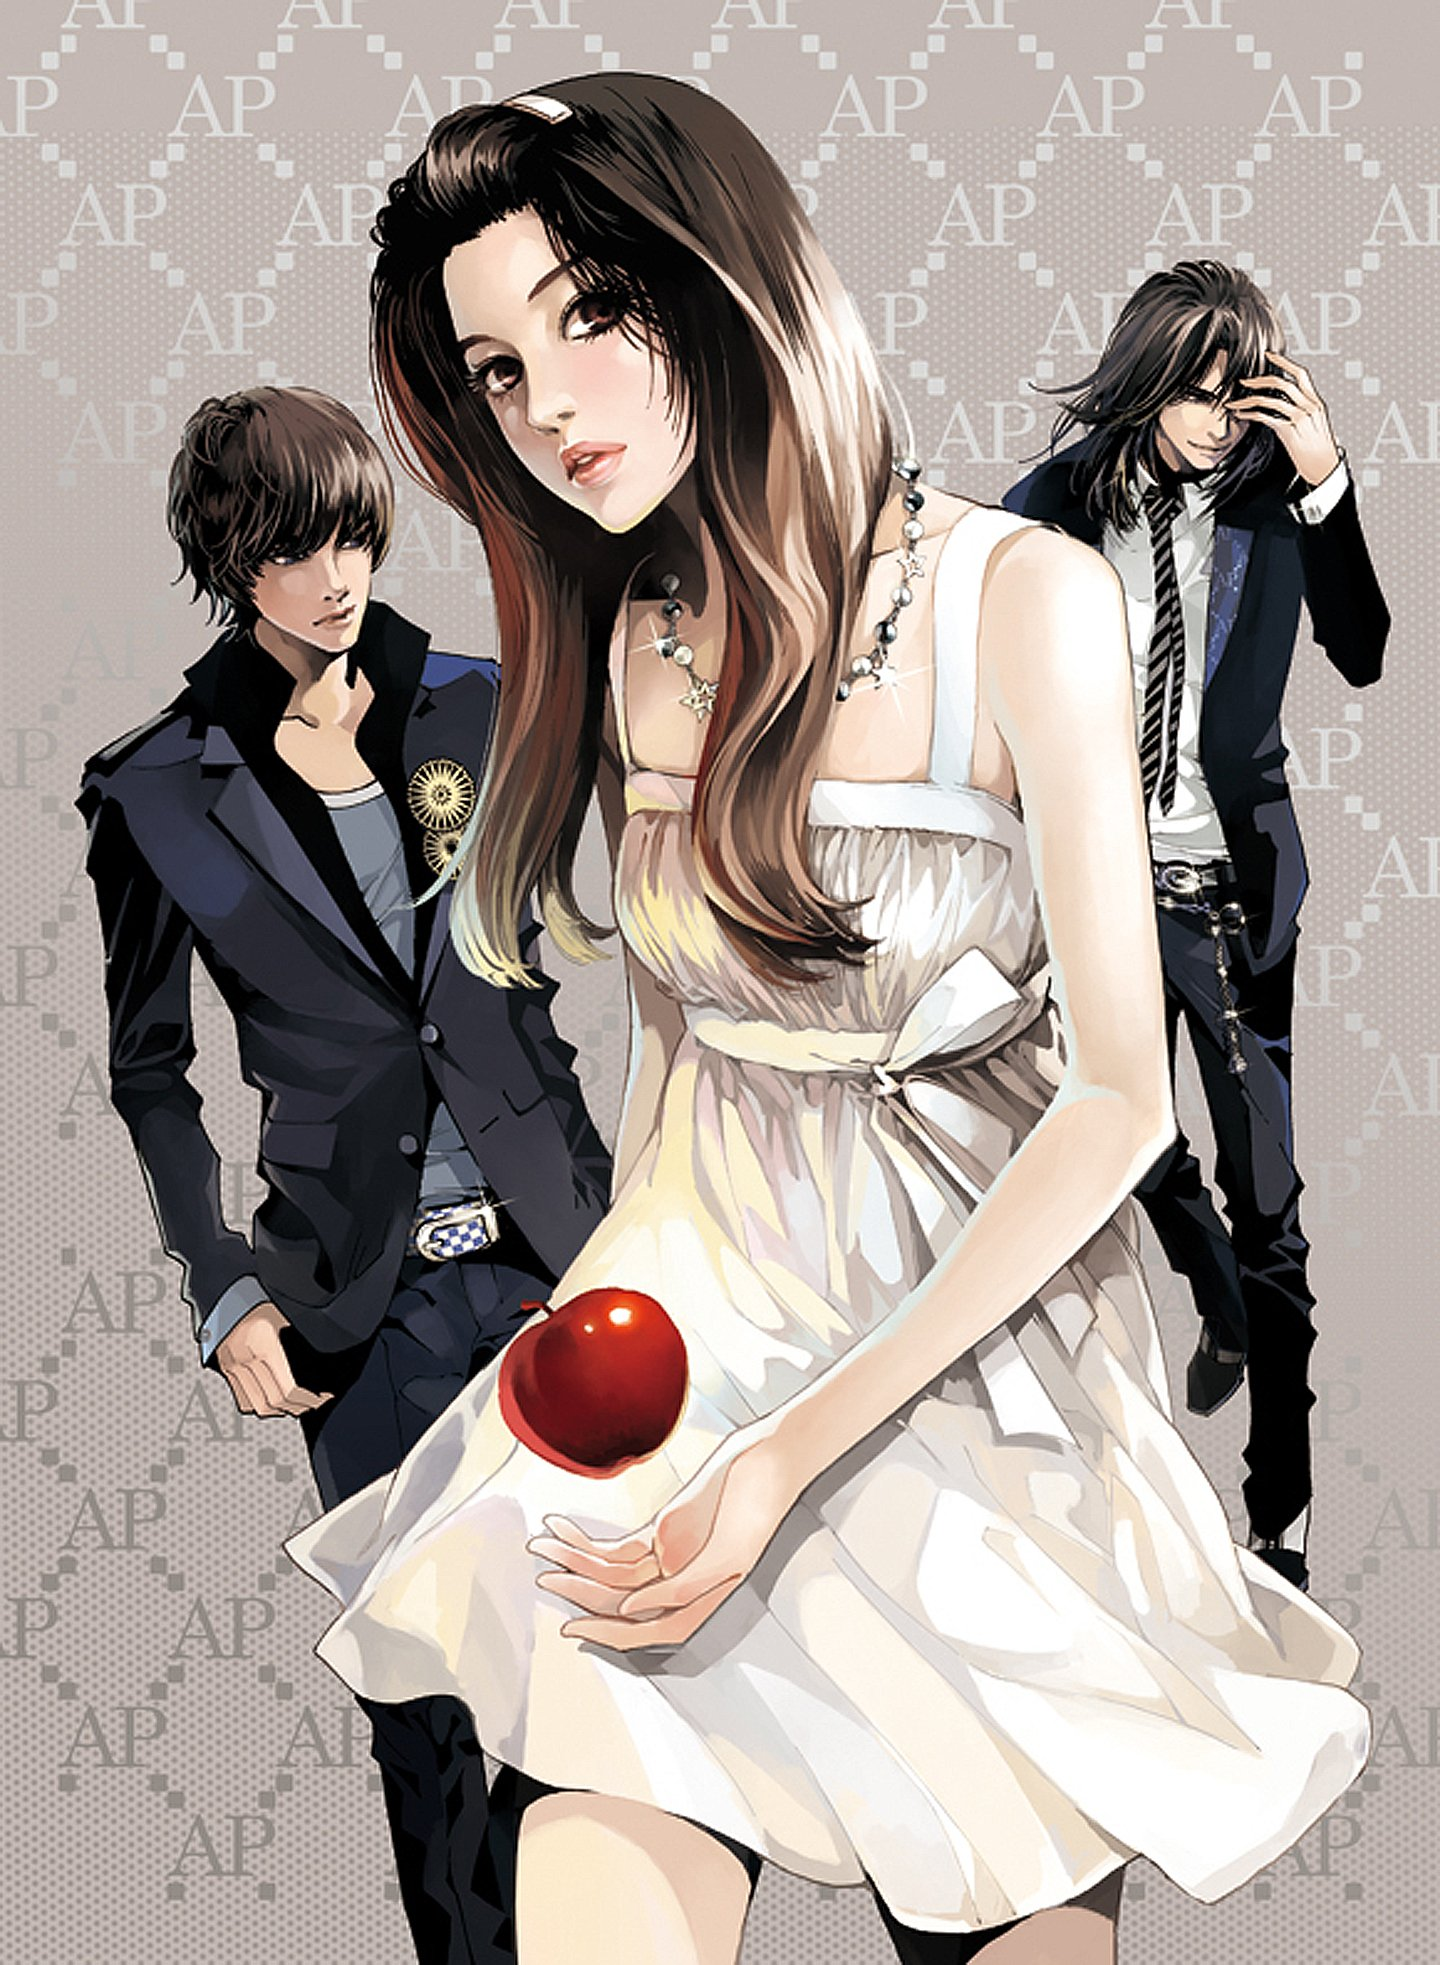 Cute Anime Watercolor Wallpaper Bad Boys Apple Red Beautiful Girl Boys Black Suit Dress Couples